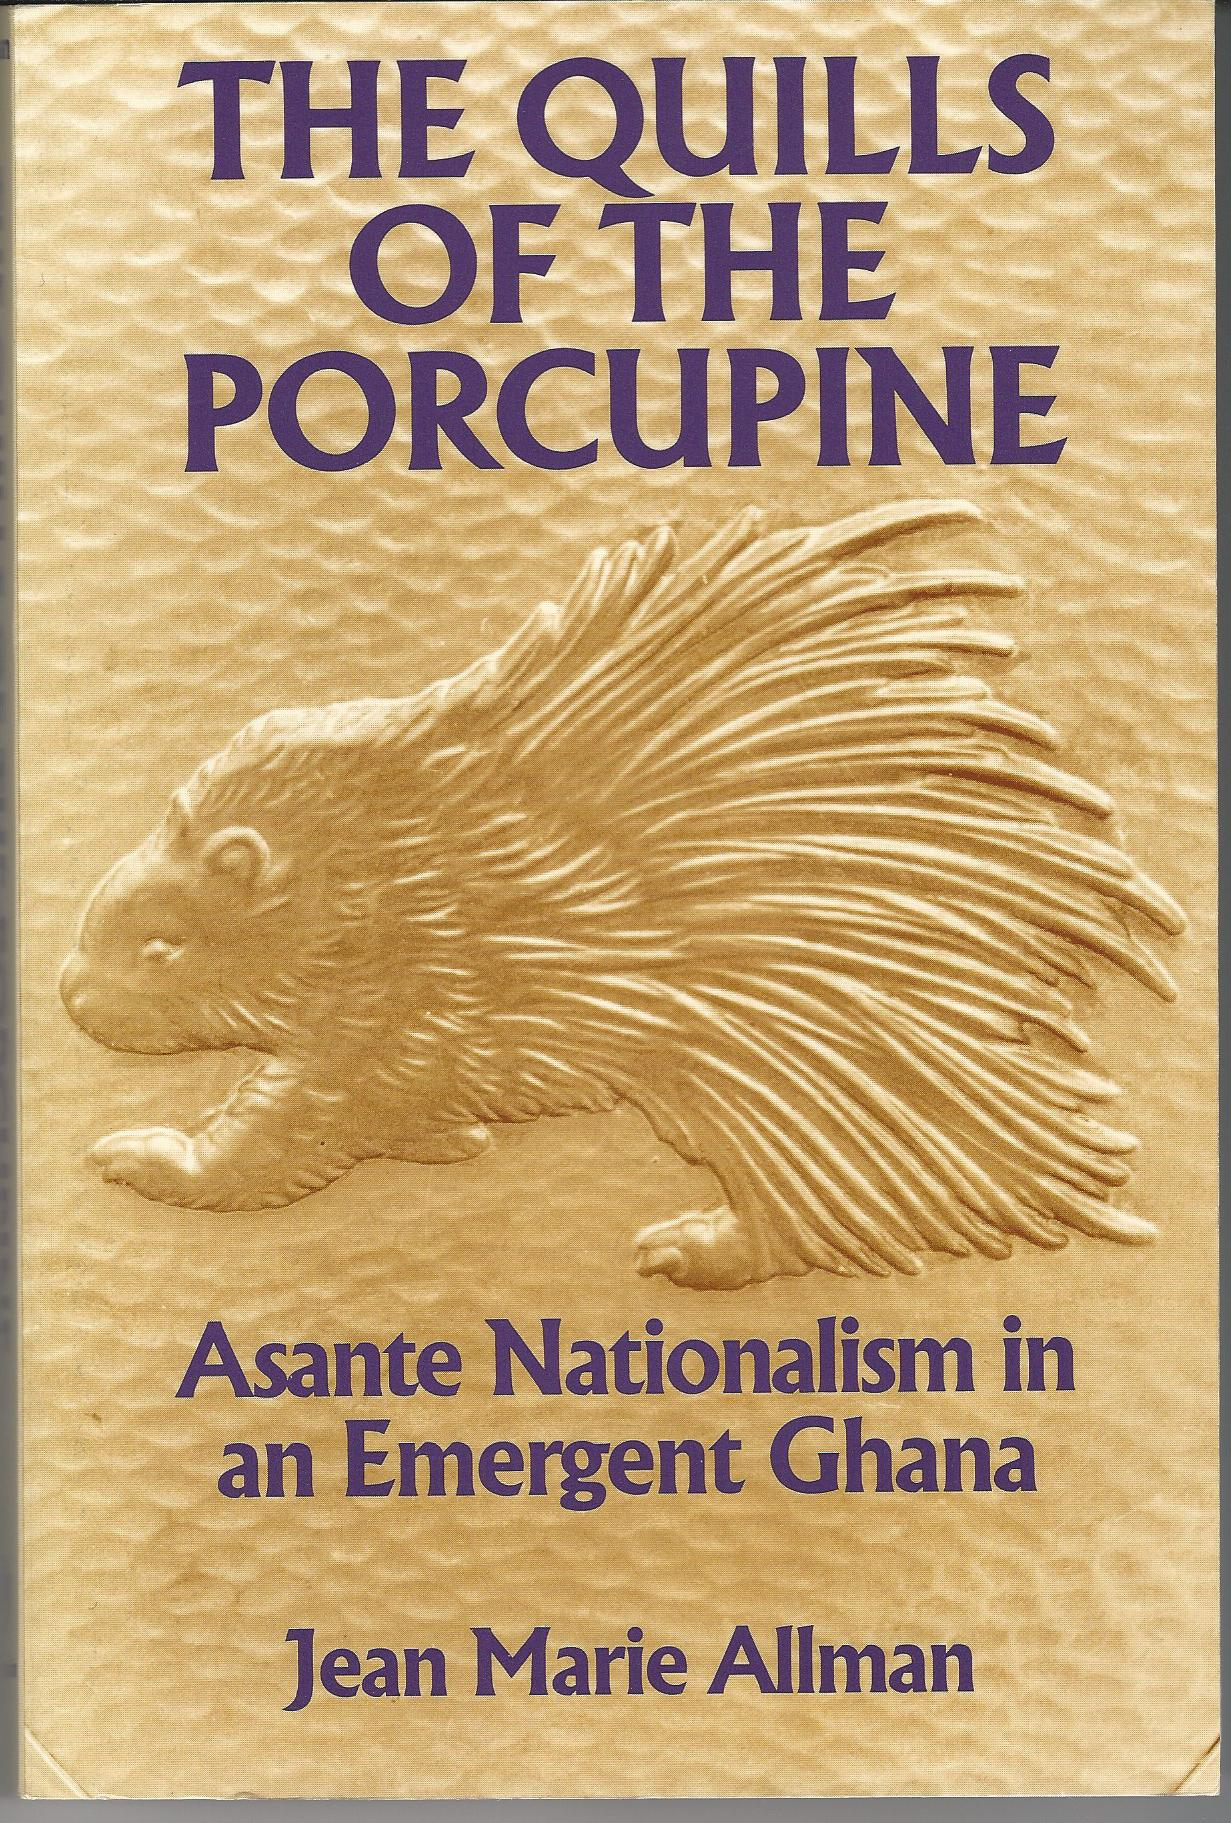 Image for The Quills of the Porcupine: Asante Nationalism in an Emergent Ghana